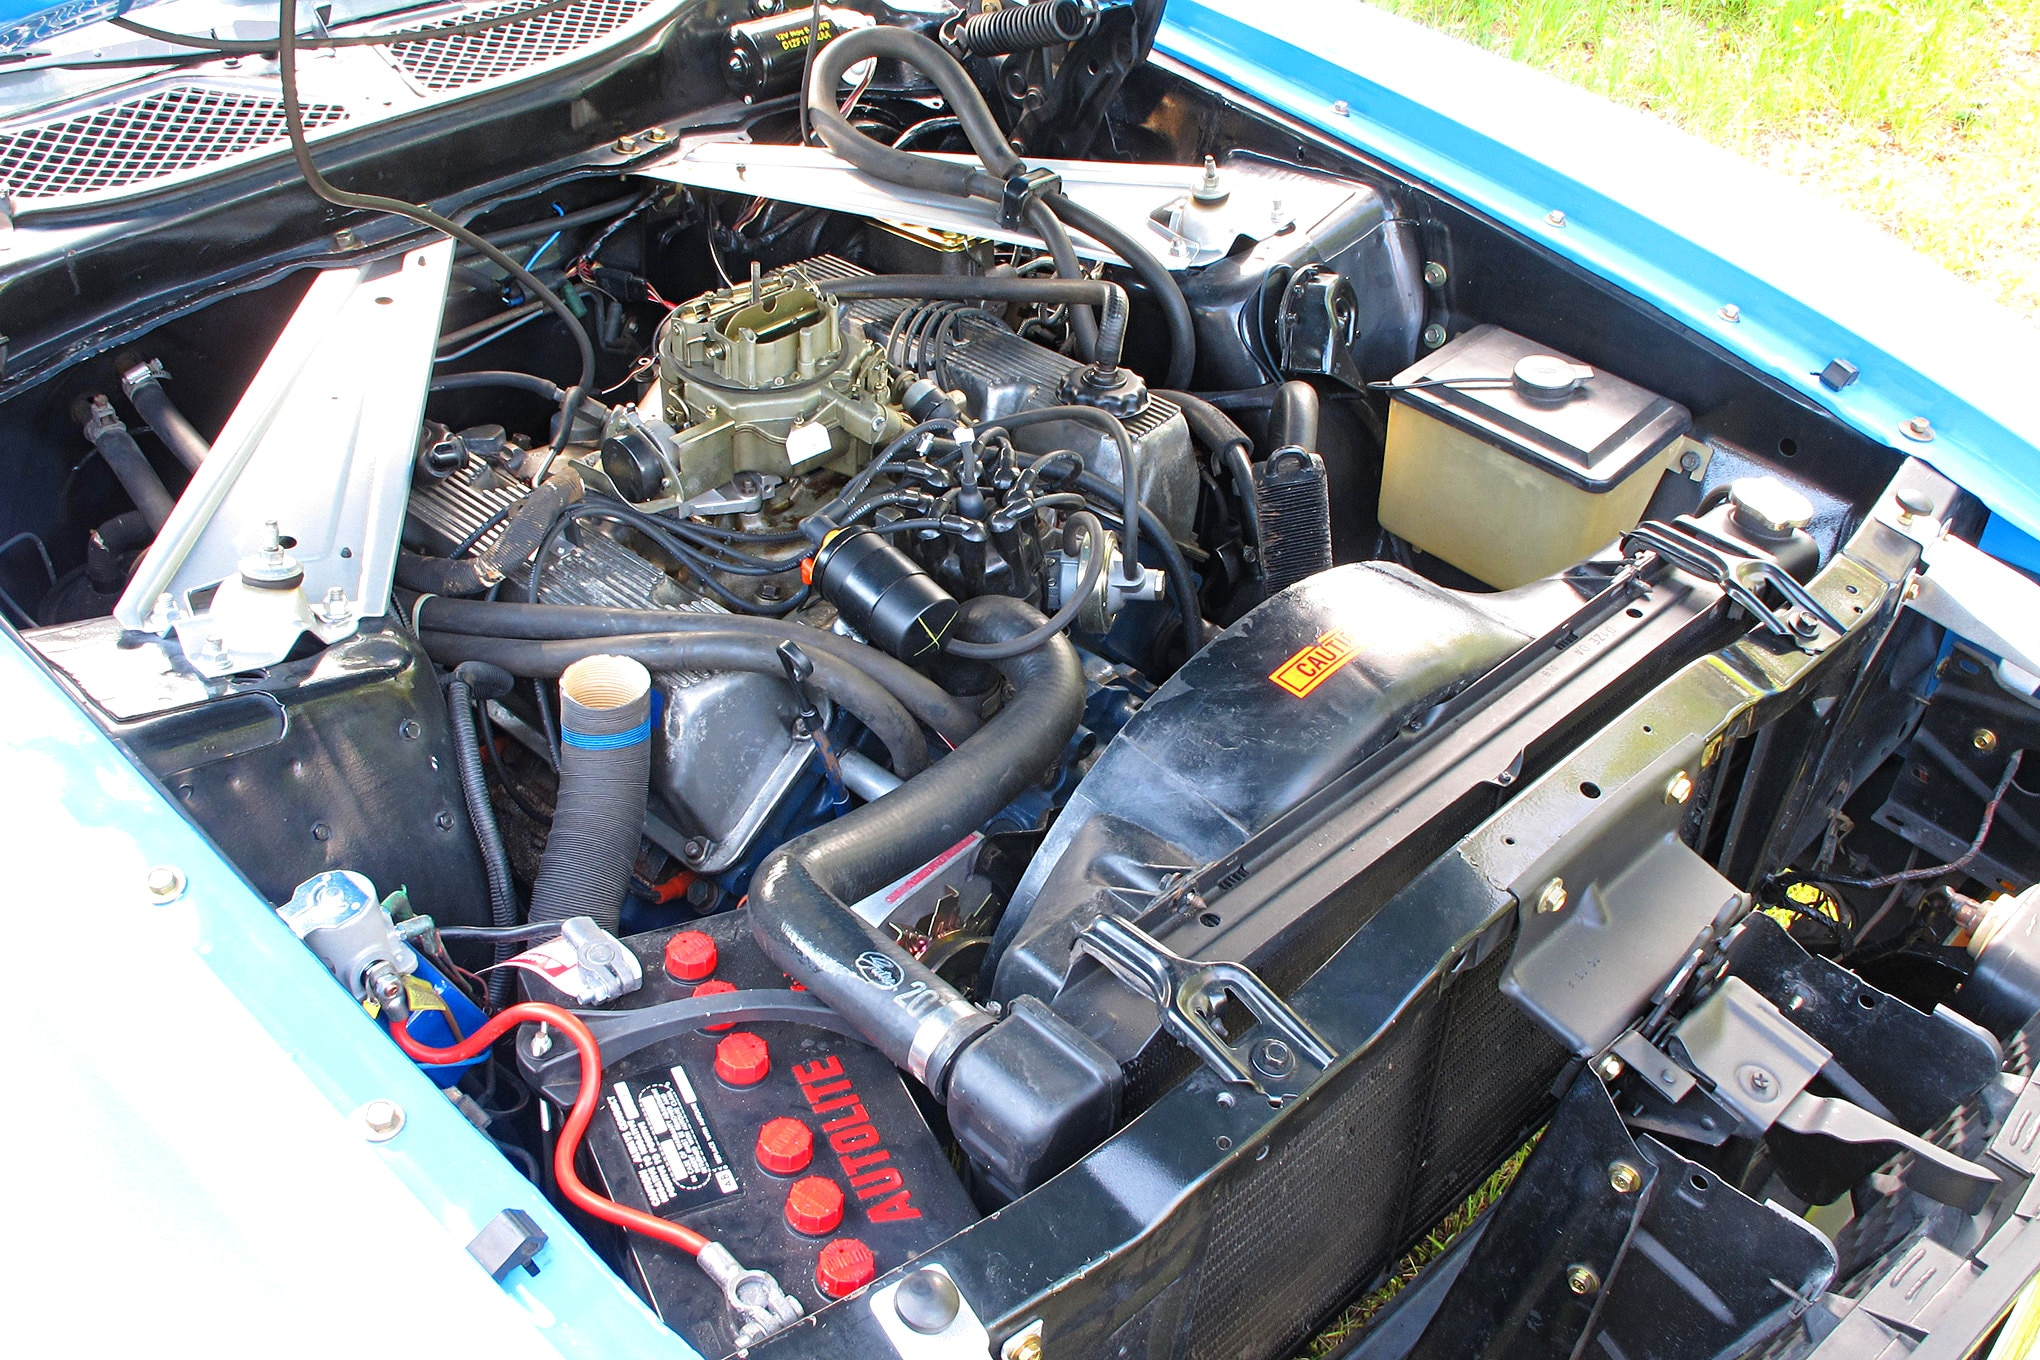 54 1971 Ford Mustang Boss 351 Blue Engine Without Air Filter